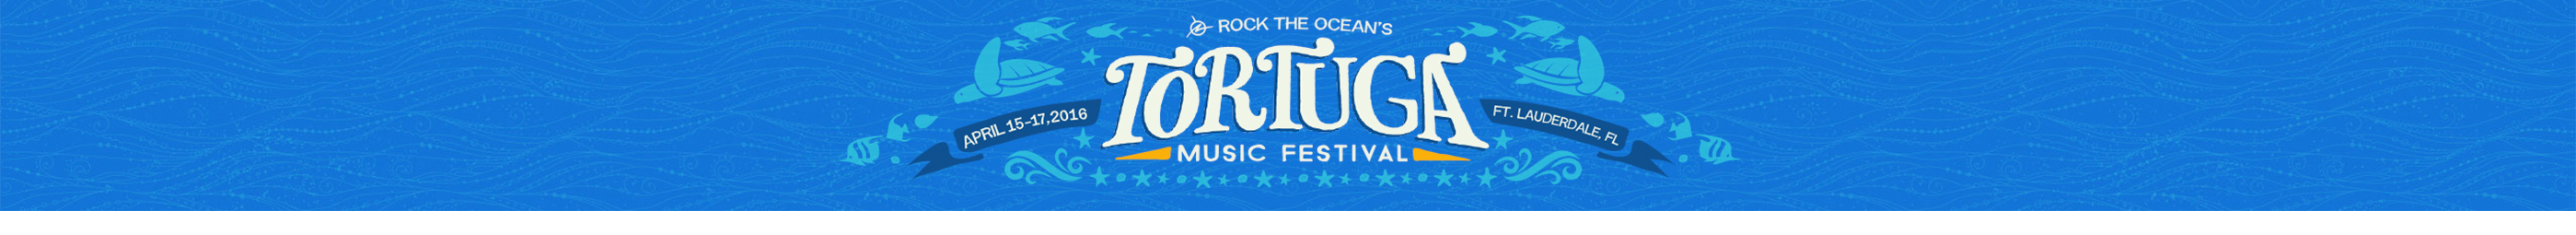 Tortuga Music Festival 2016 Travel Packages